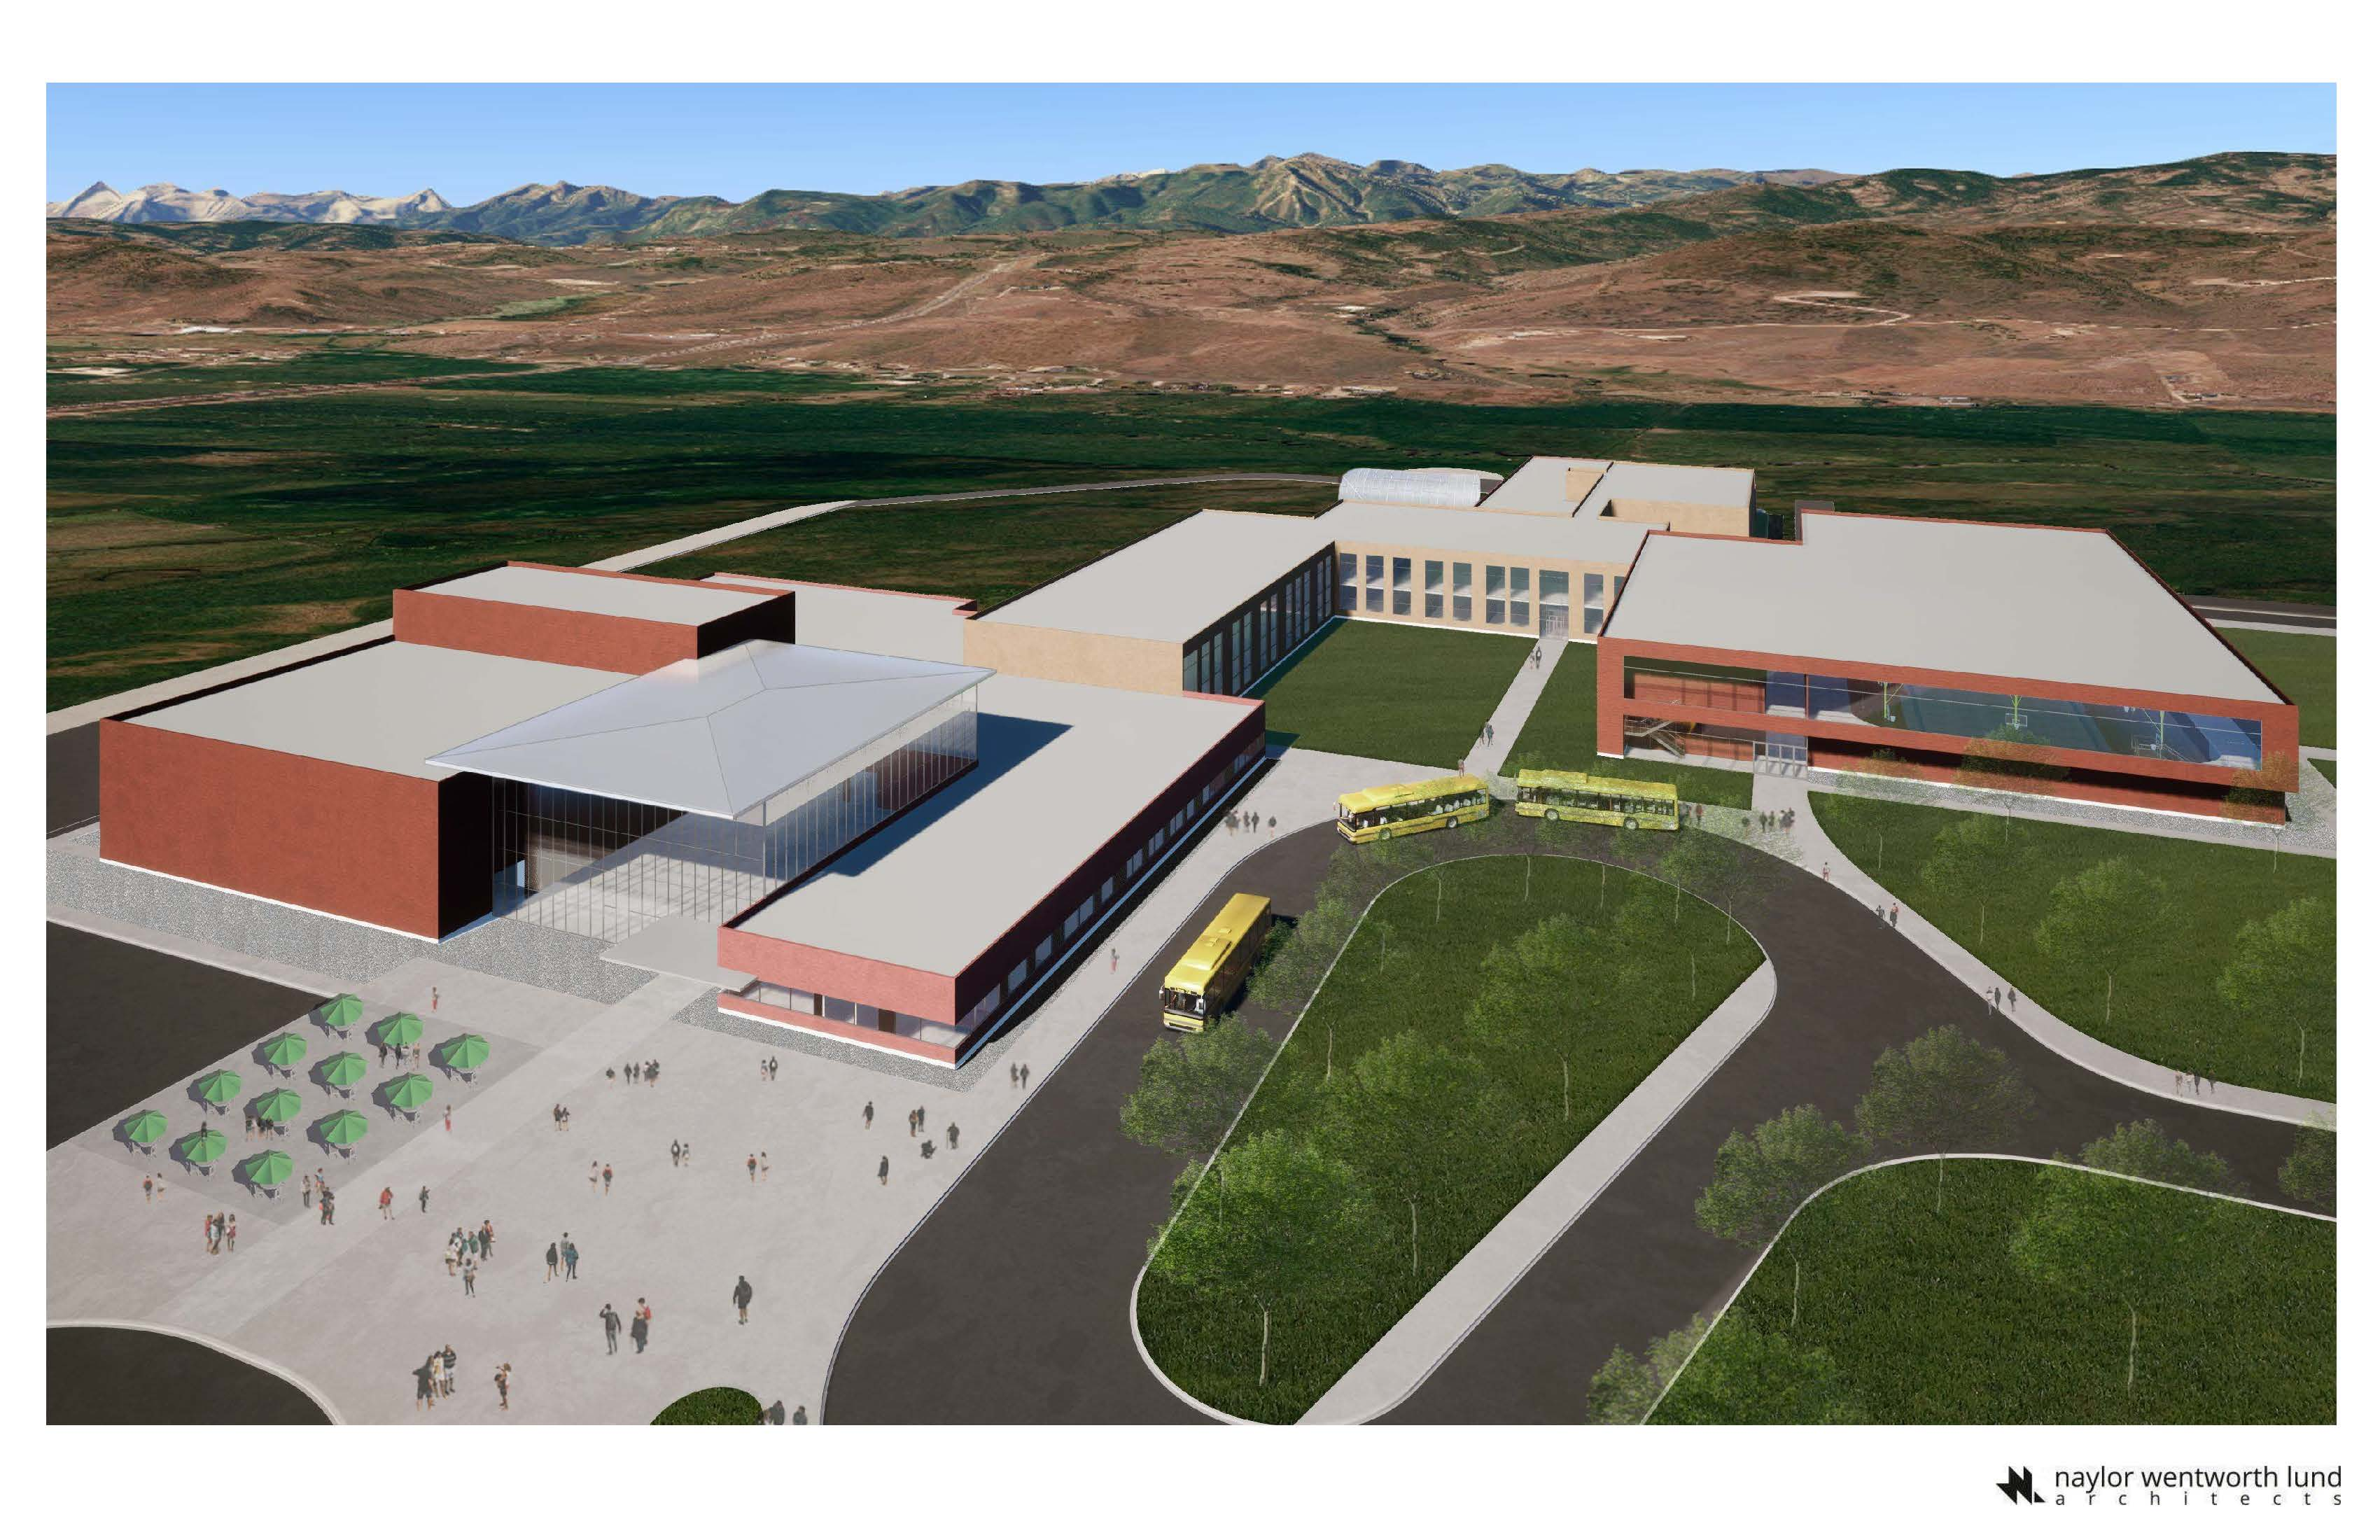 South Summit High School bond: Proponents hope information campaign for $87M bond can reverse 2017 rejection